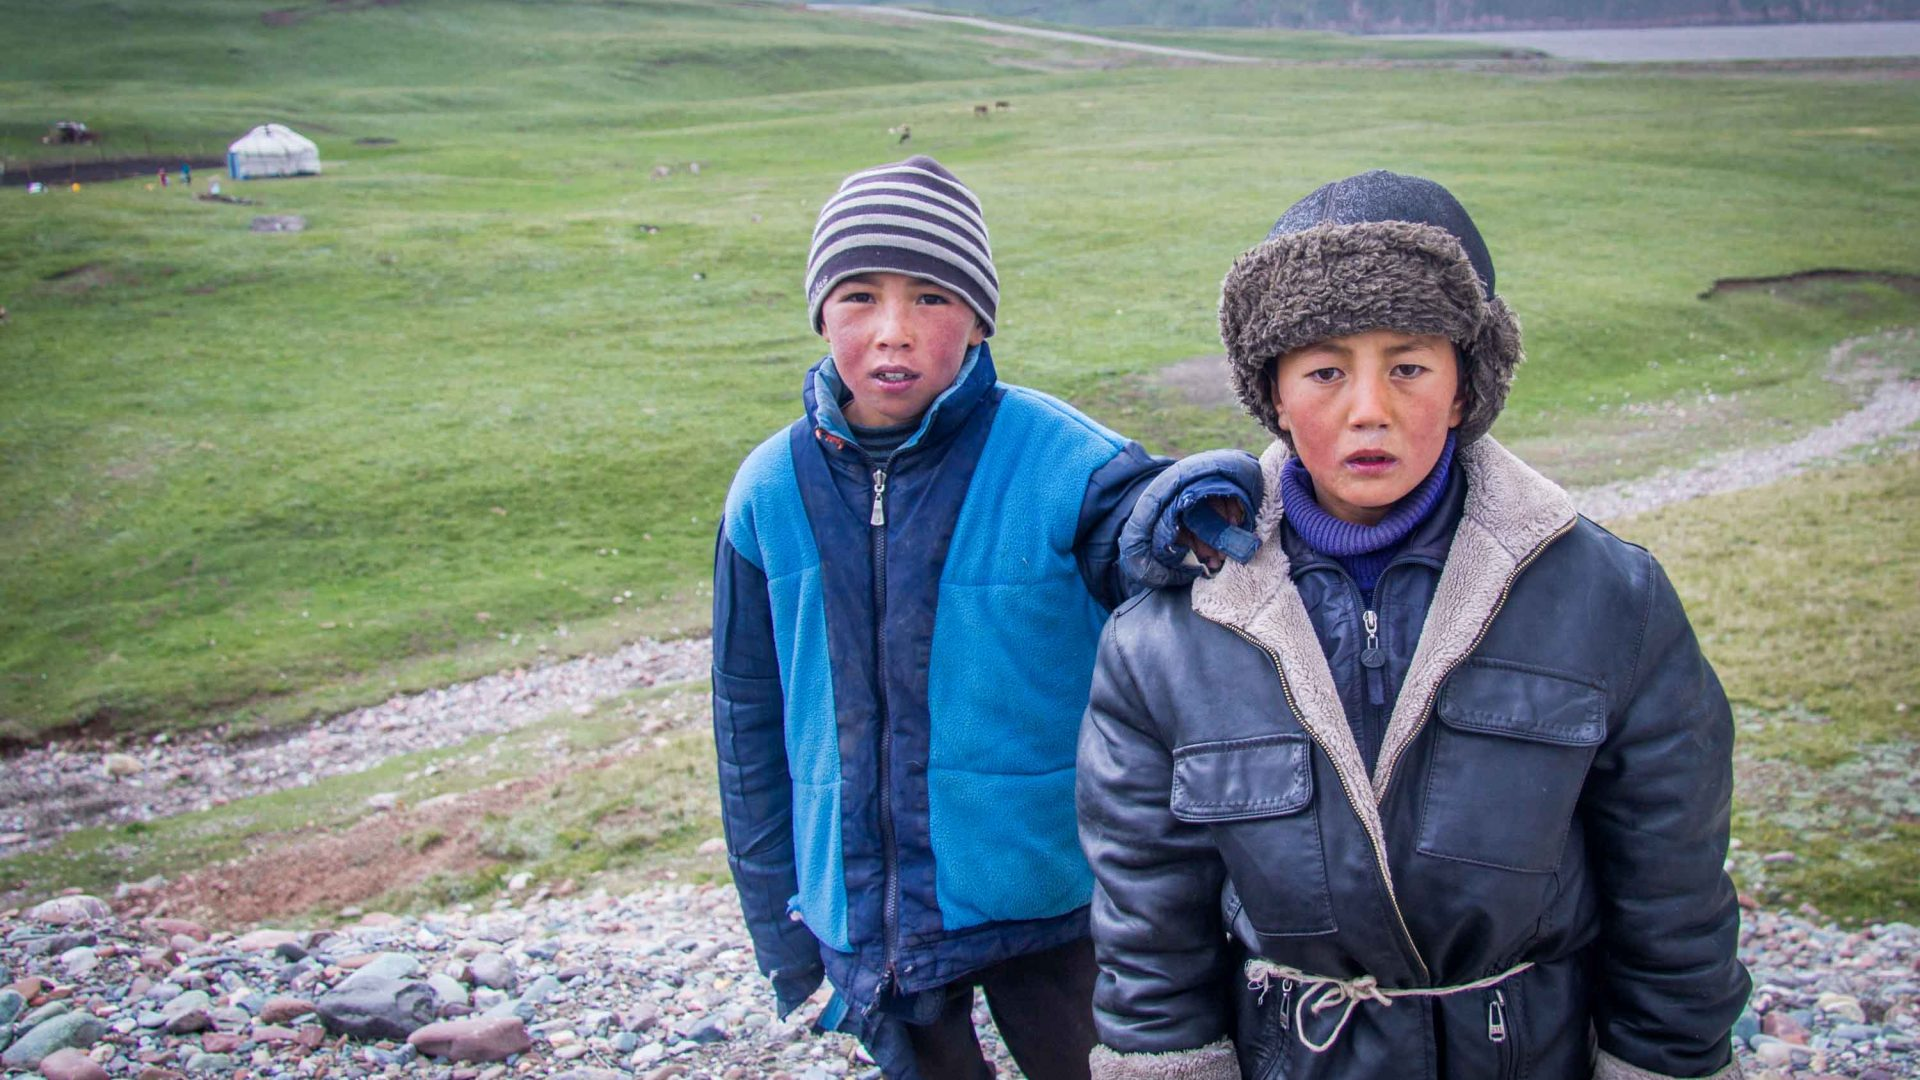 Green pastures and friendly faces in Kyrgyzstan.